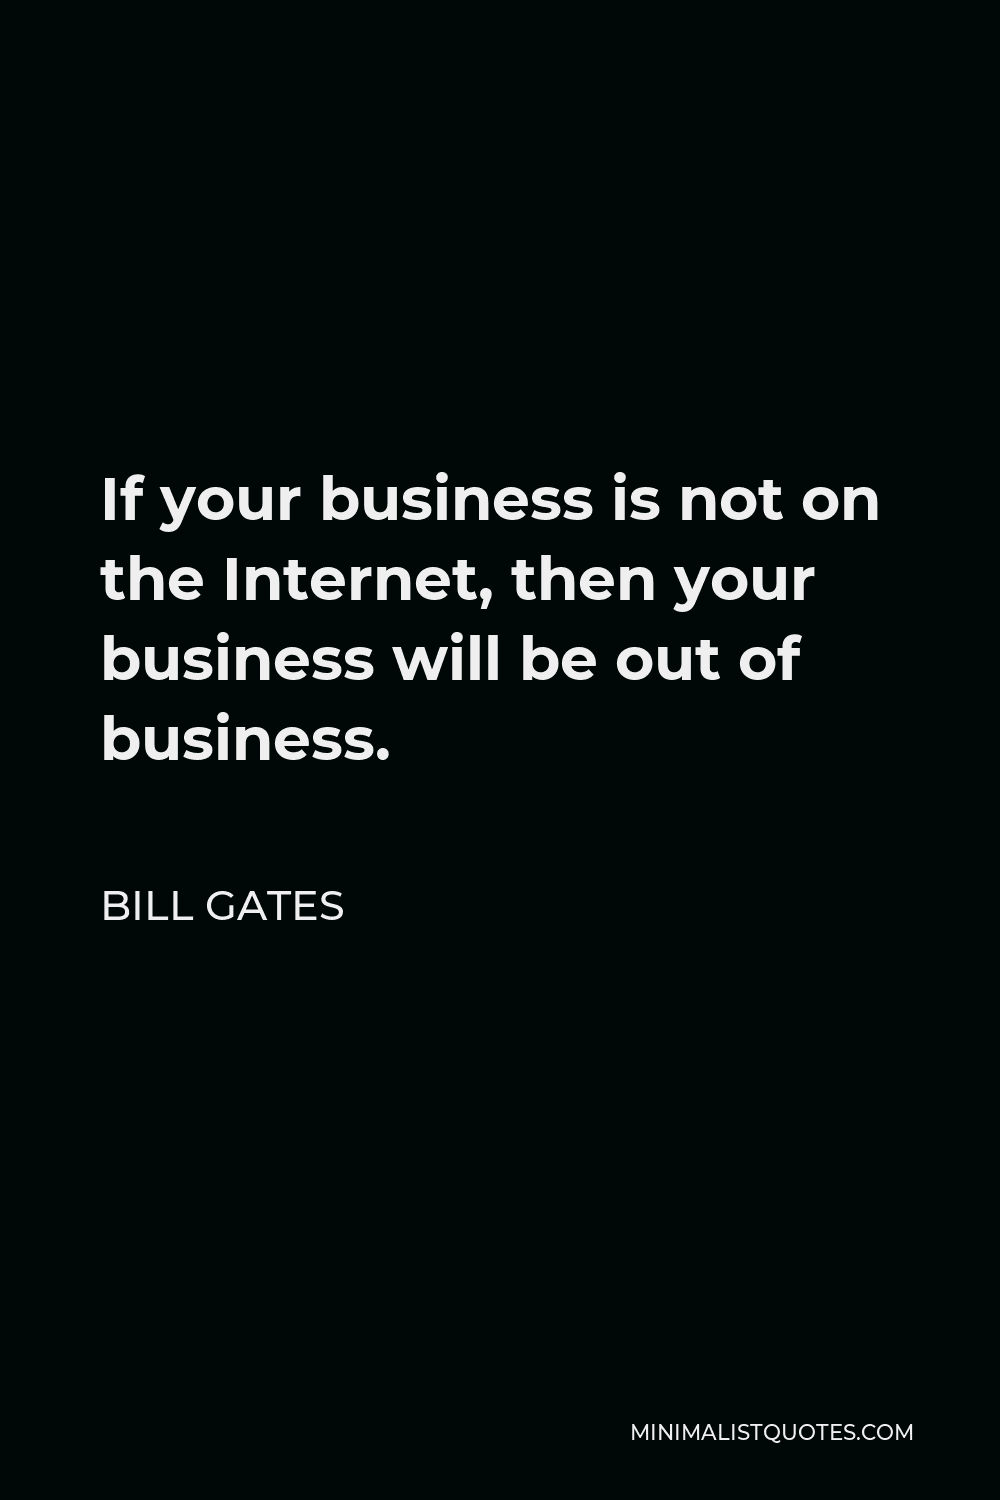 Bill Gates Quote: If your business is not on the Internet, then your  business will be out of business.